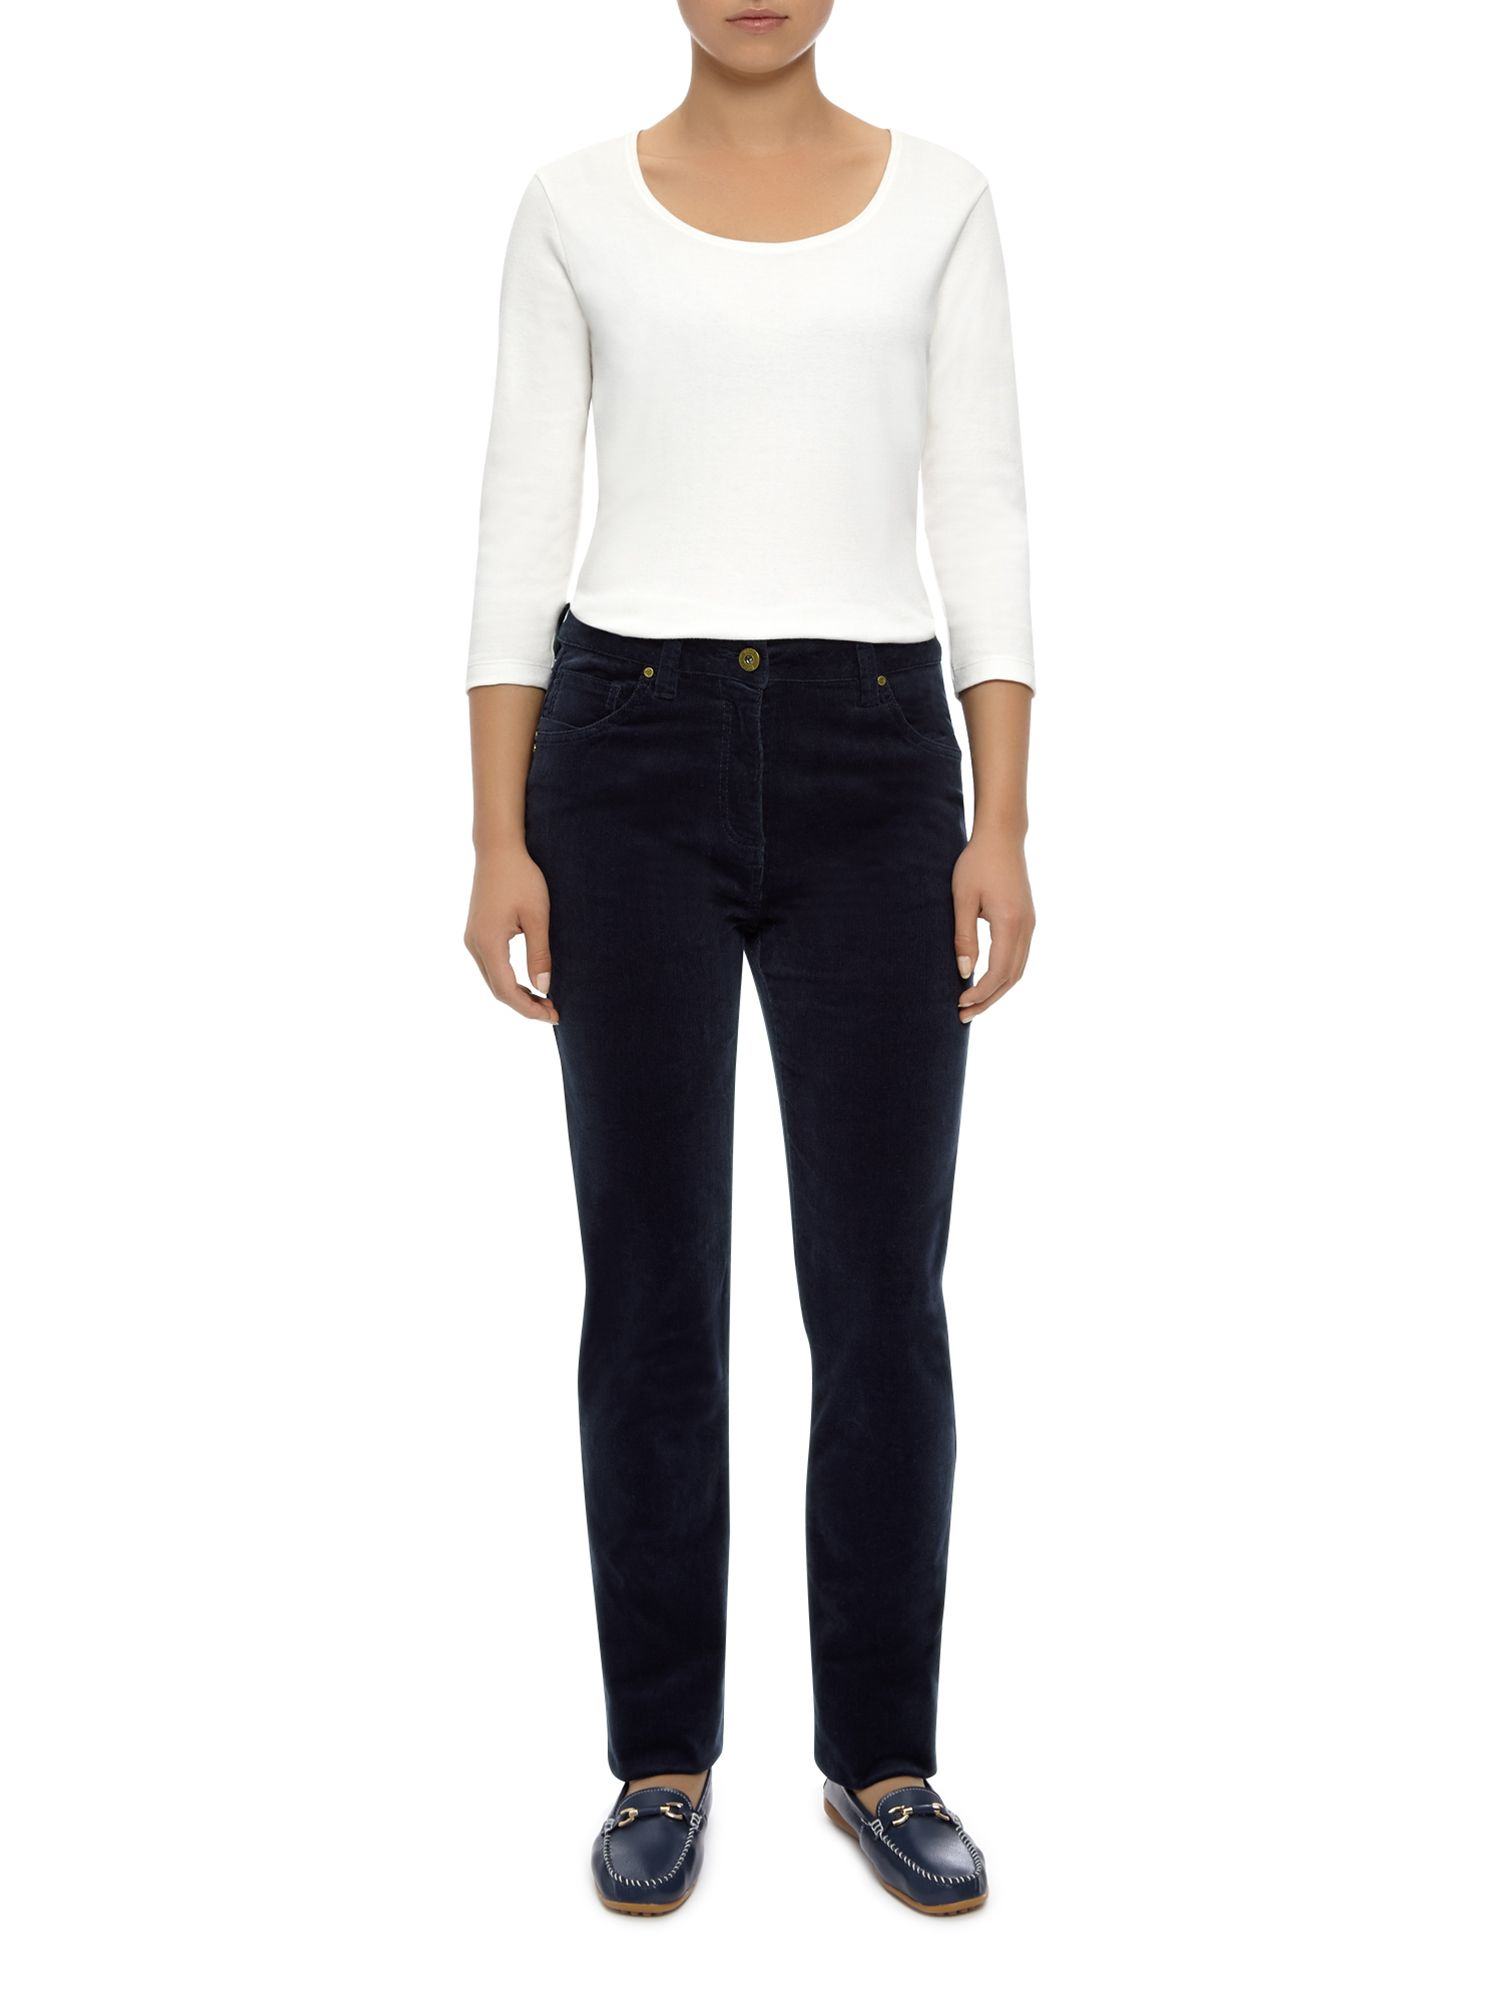 The trousers for women from Gap are always on-trend and will be your go-to pieces. Shop ladies trousers in crop, boot cut, skinny, straight, and jogger styles. Trousers Cords Shorts & Swim T-Shirts Polos Shirts Sweaters Hoodies & Sweatshirts Blazers & Jackets GapFit Available in Petite & Tall. Skinny Ankle Pants £ True straight.